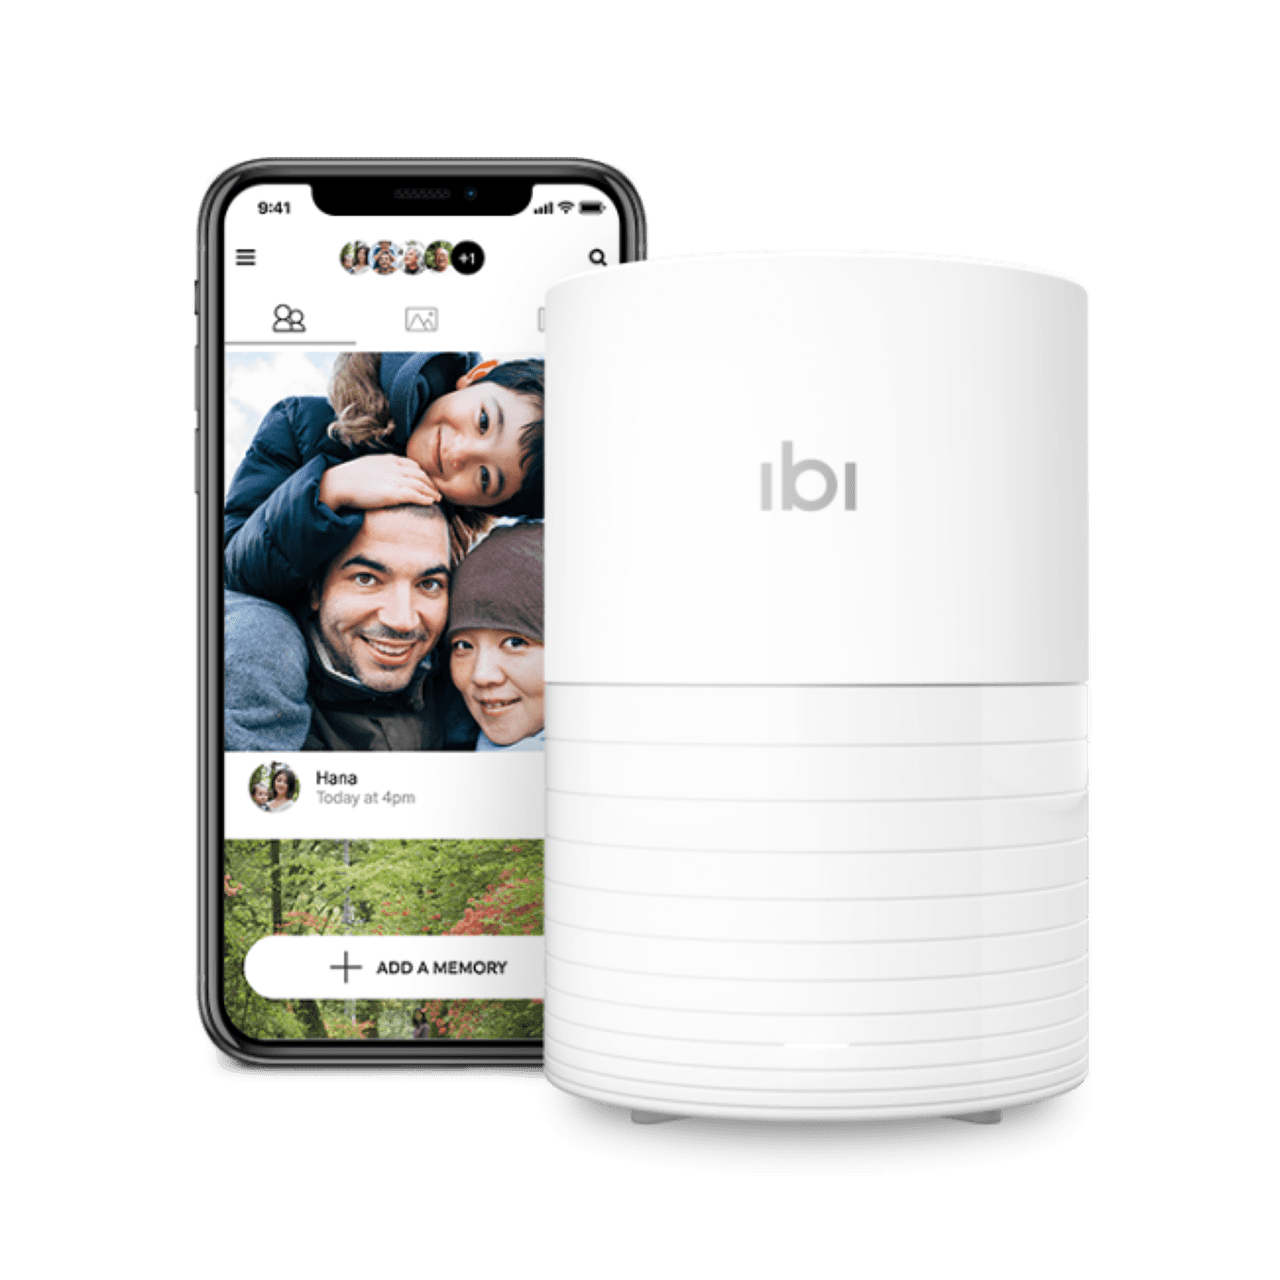 The iBi makes for a great innovative tech gift for your friends and family members